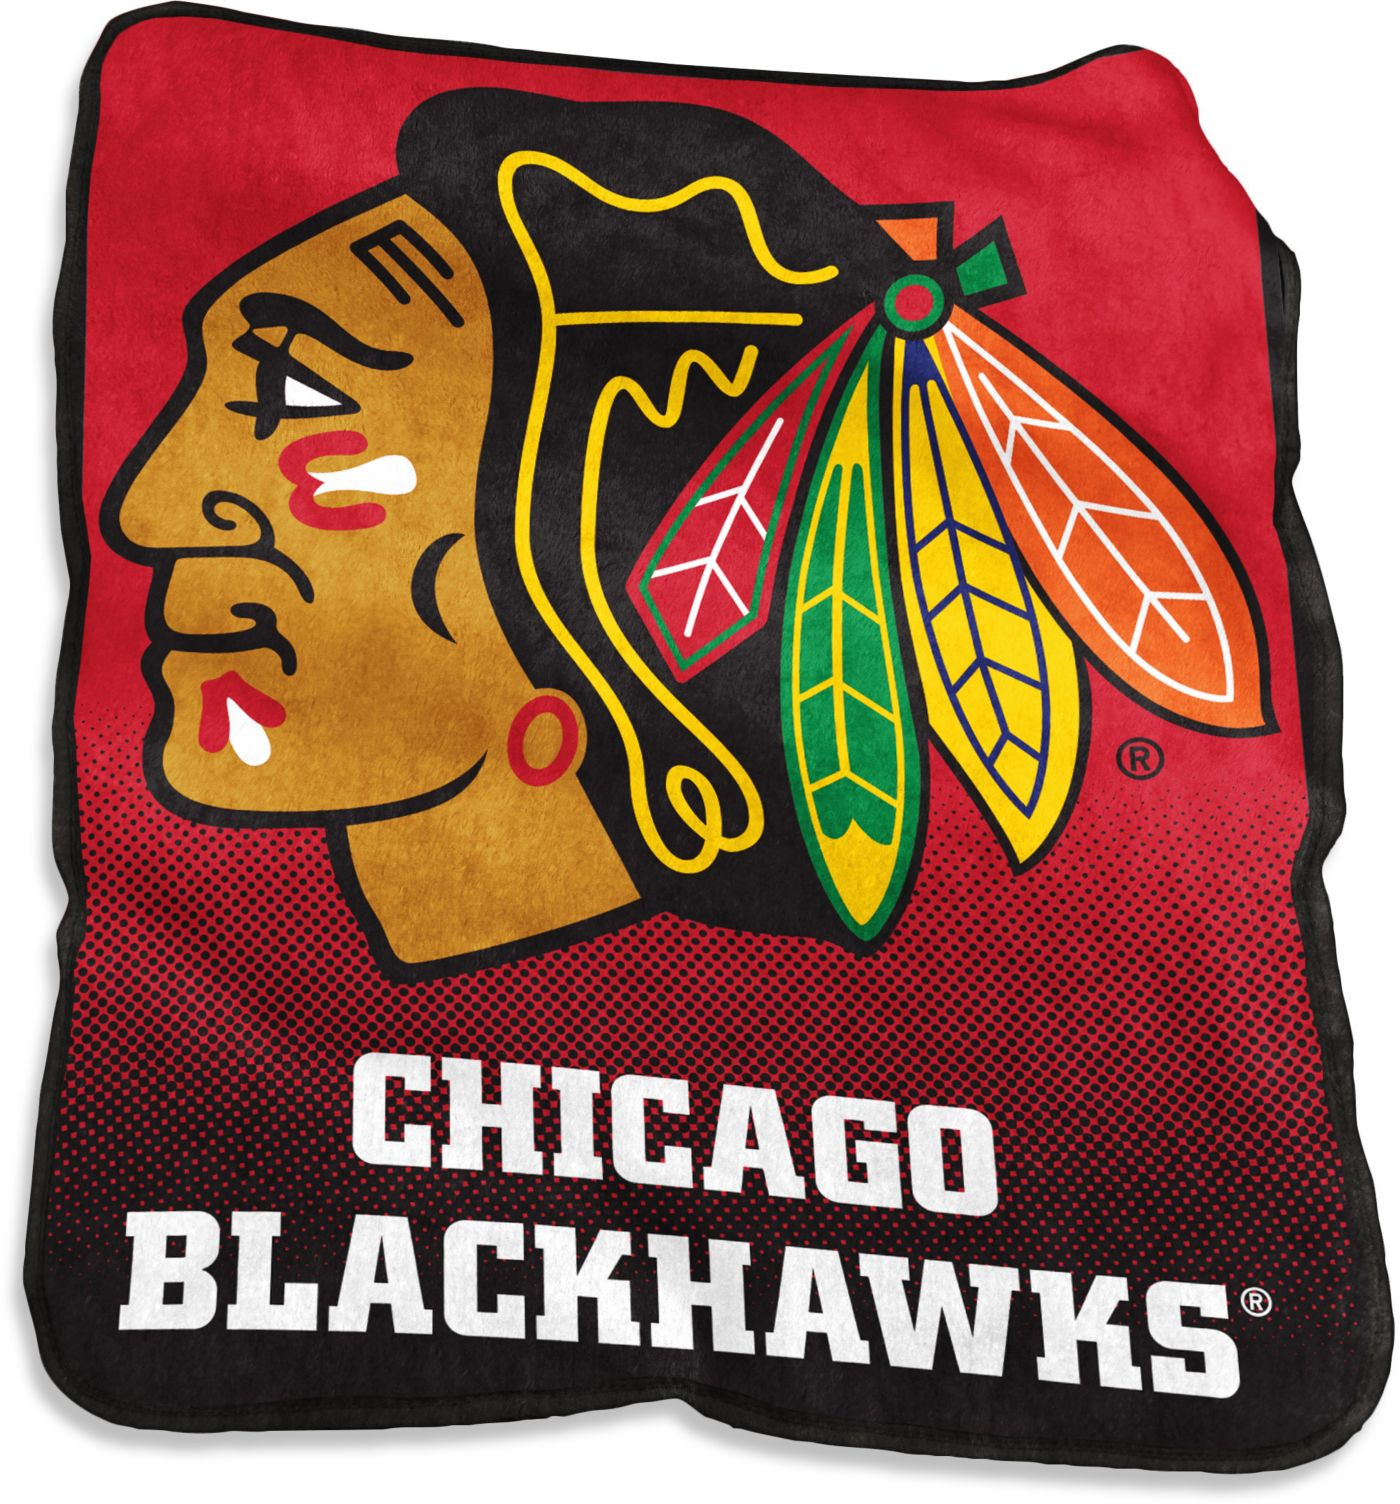 Chicago Blackhawks Raschel Throw